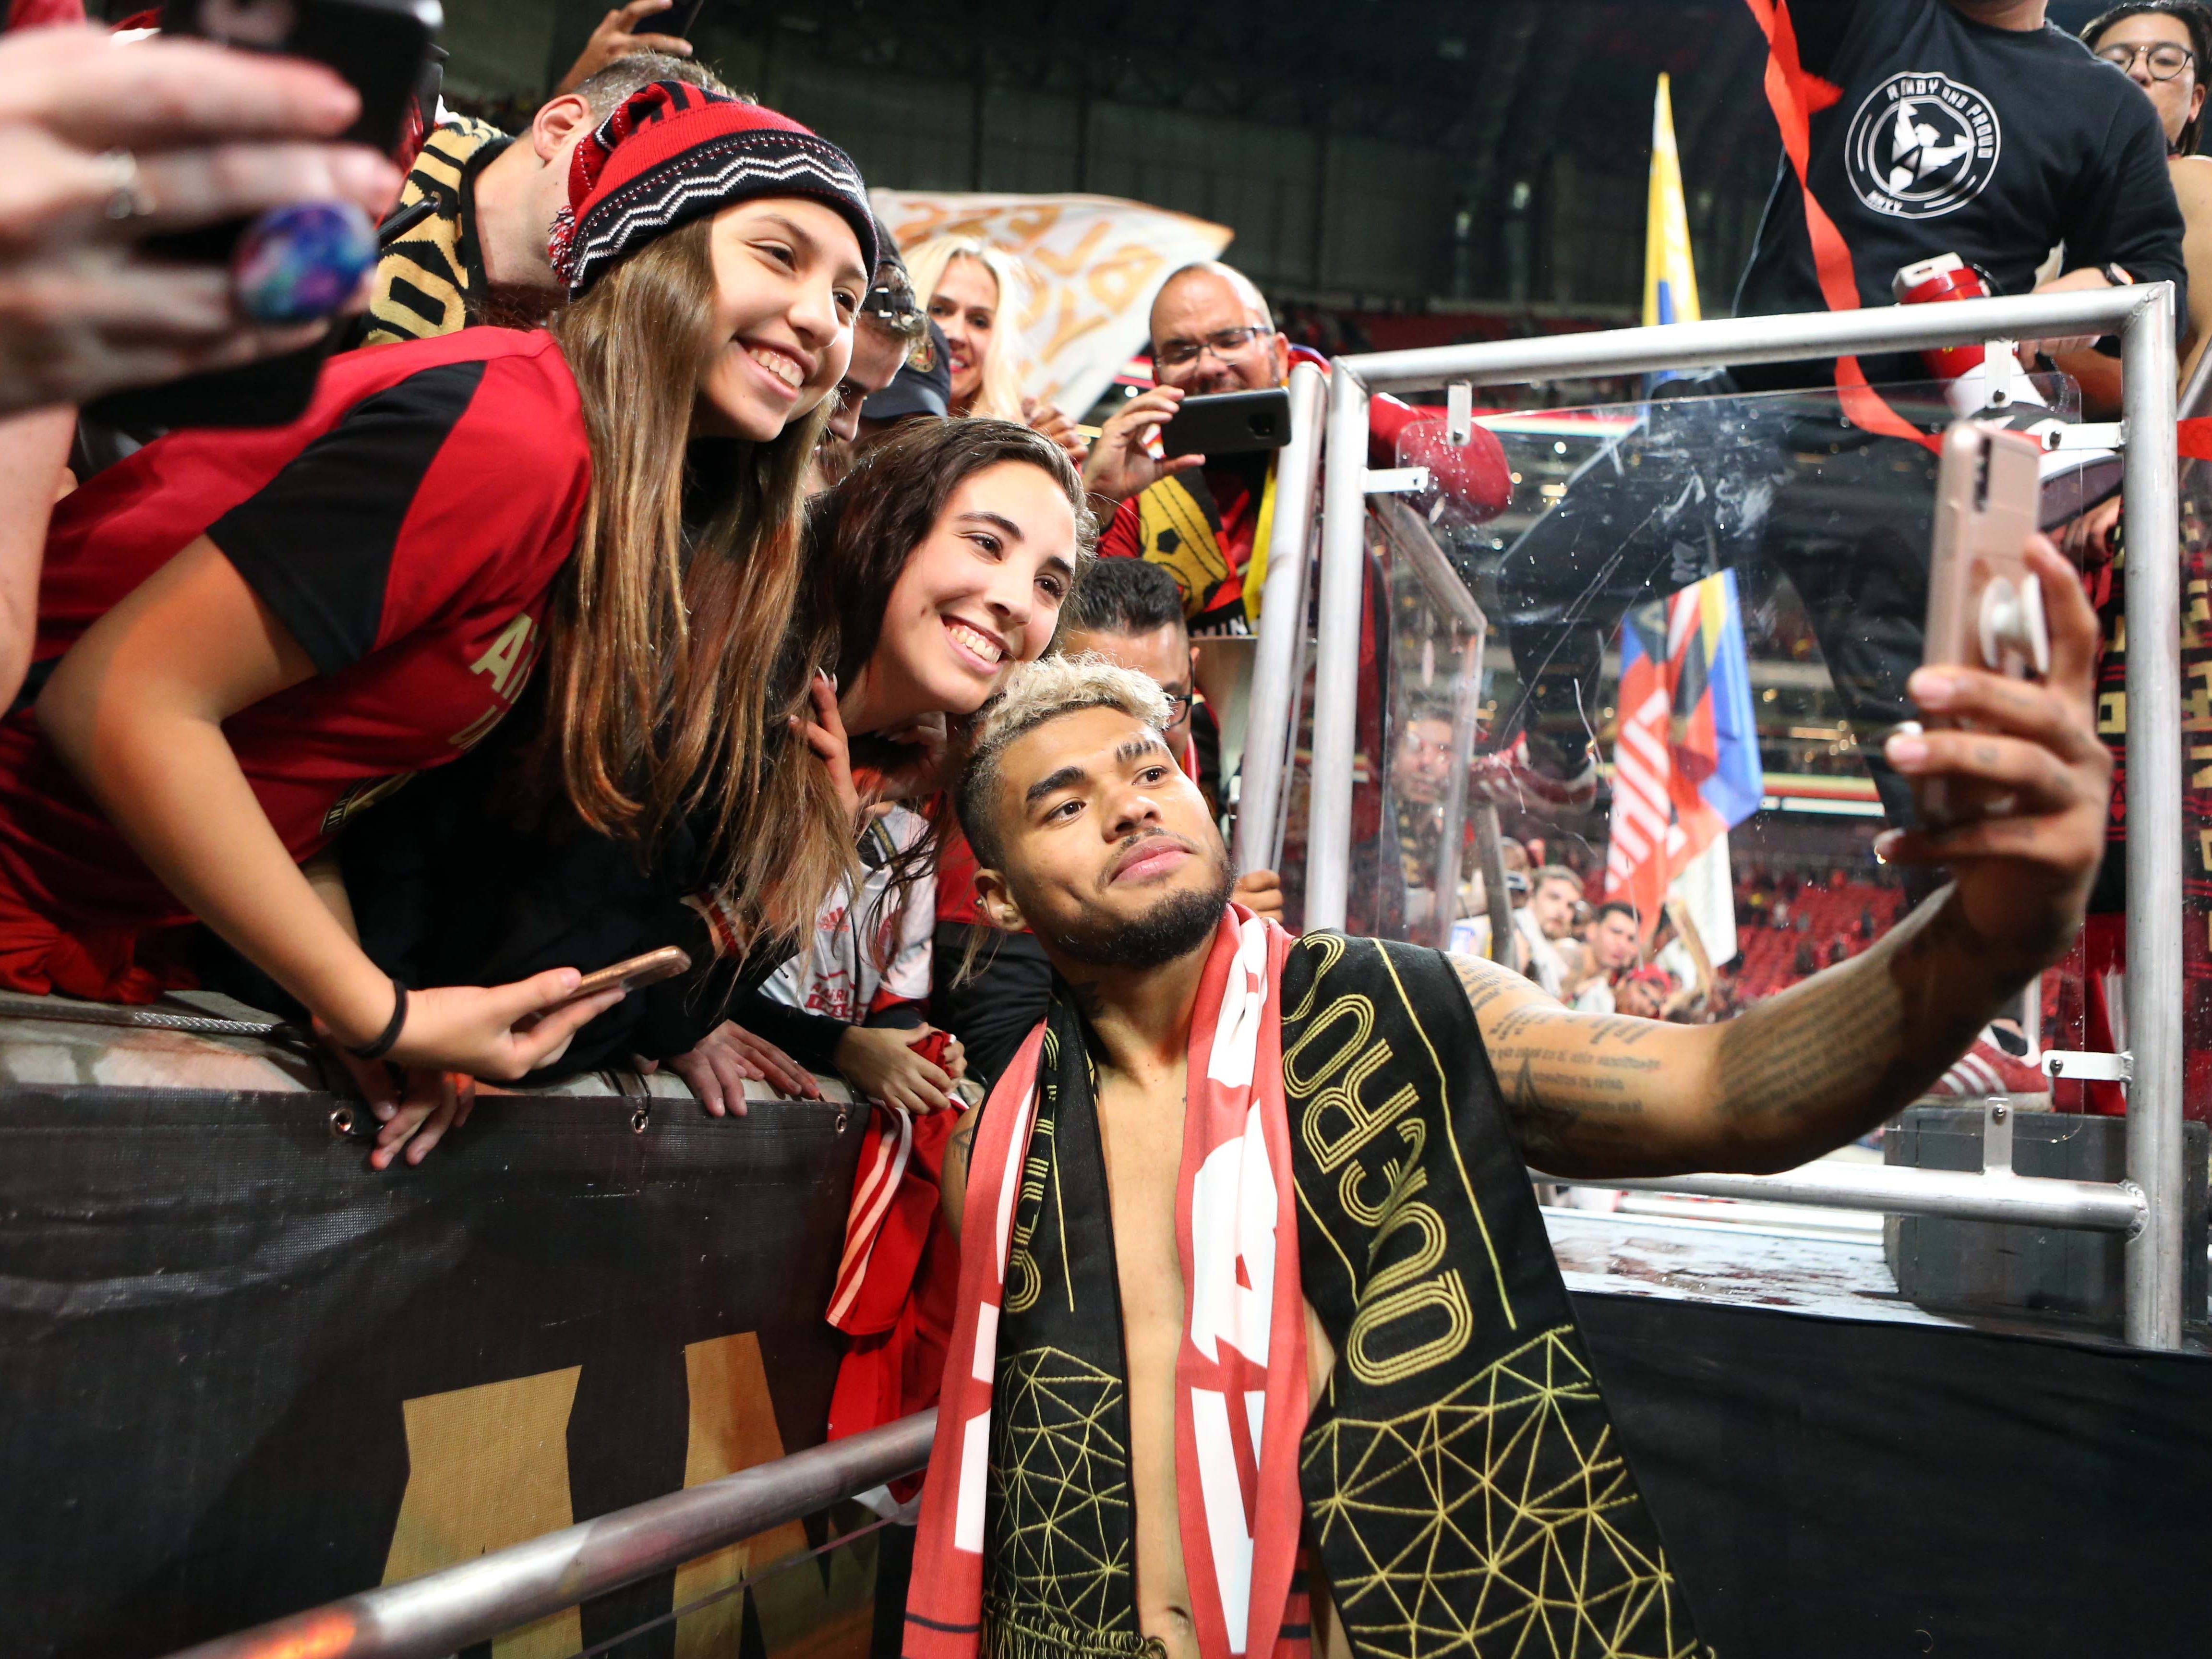 Atlanta United forward Josef Martinez takes a photo with fans after defeating the New York Red Bulls in the first leg of the MLS Eastern Conference Championship at Mercedes-Benz Stadium.